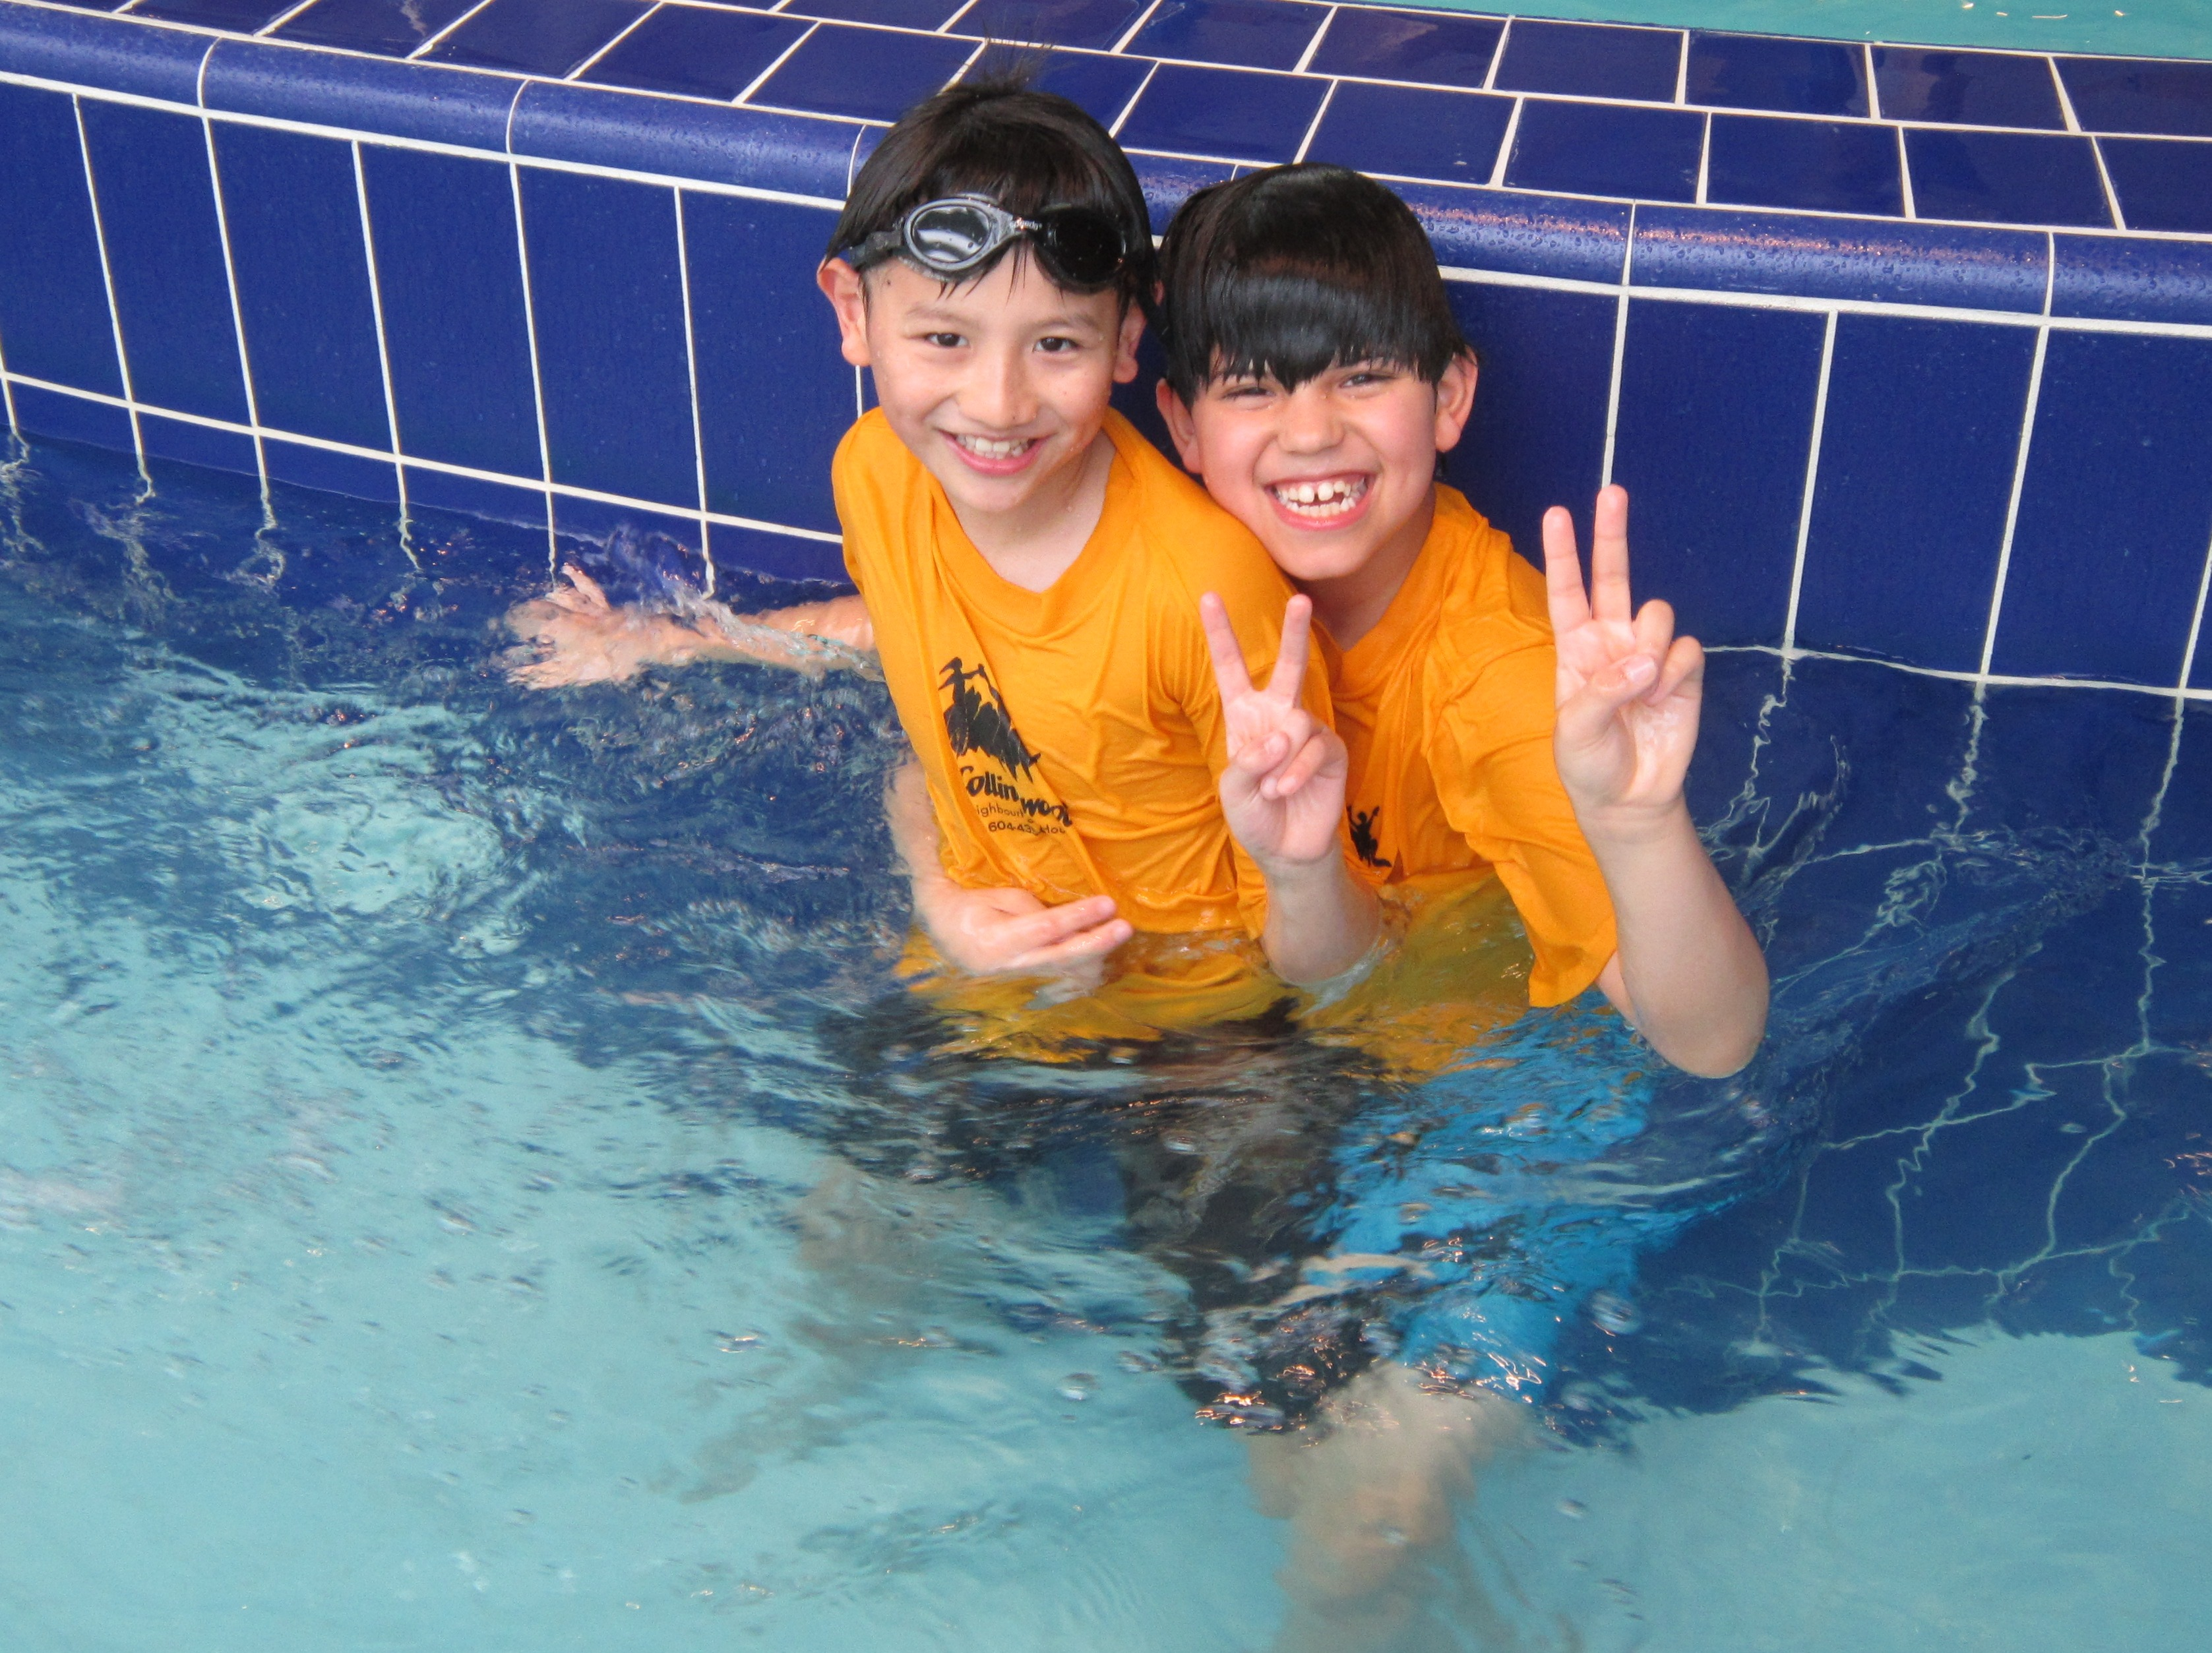 Two boys in a swimming pool hugging and smiling.